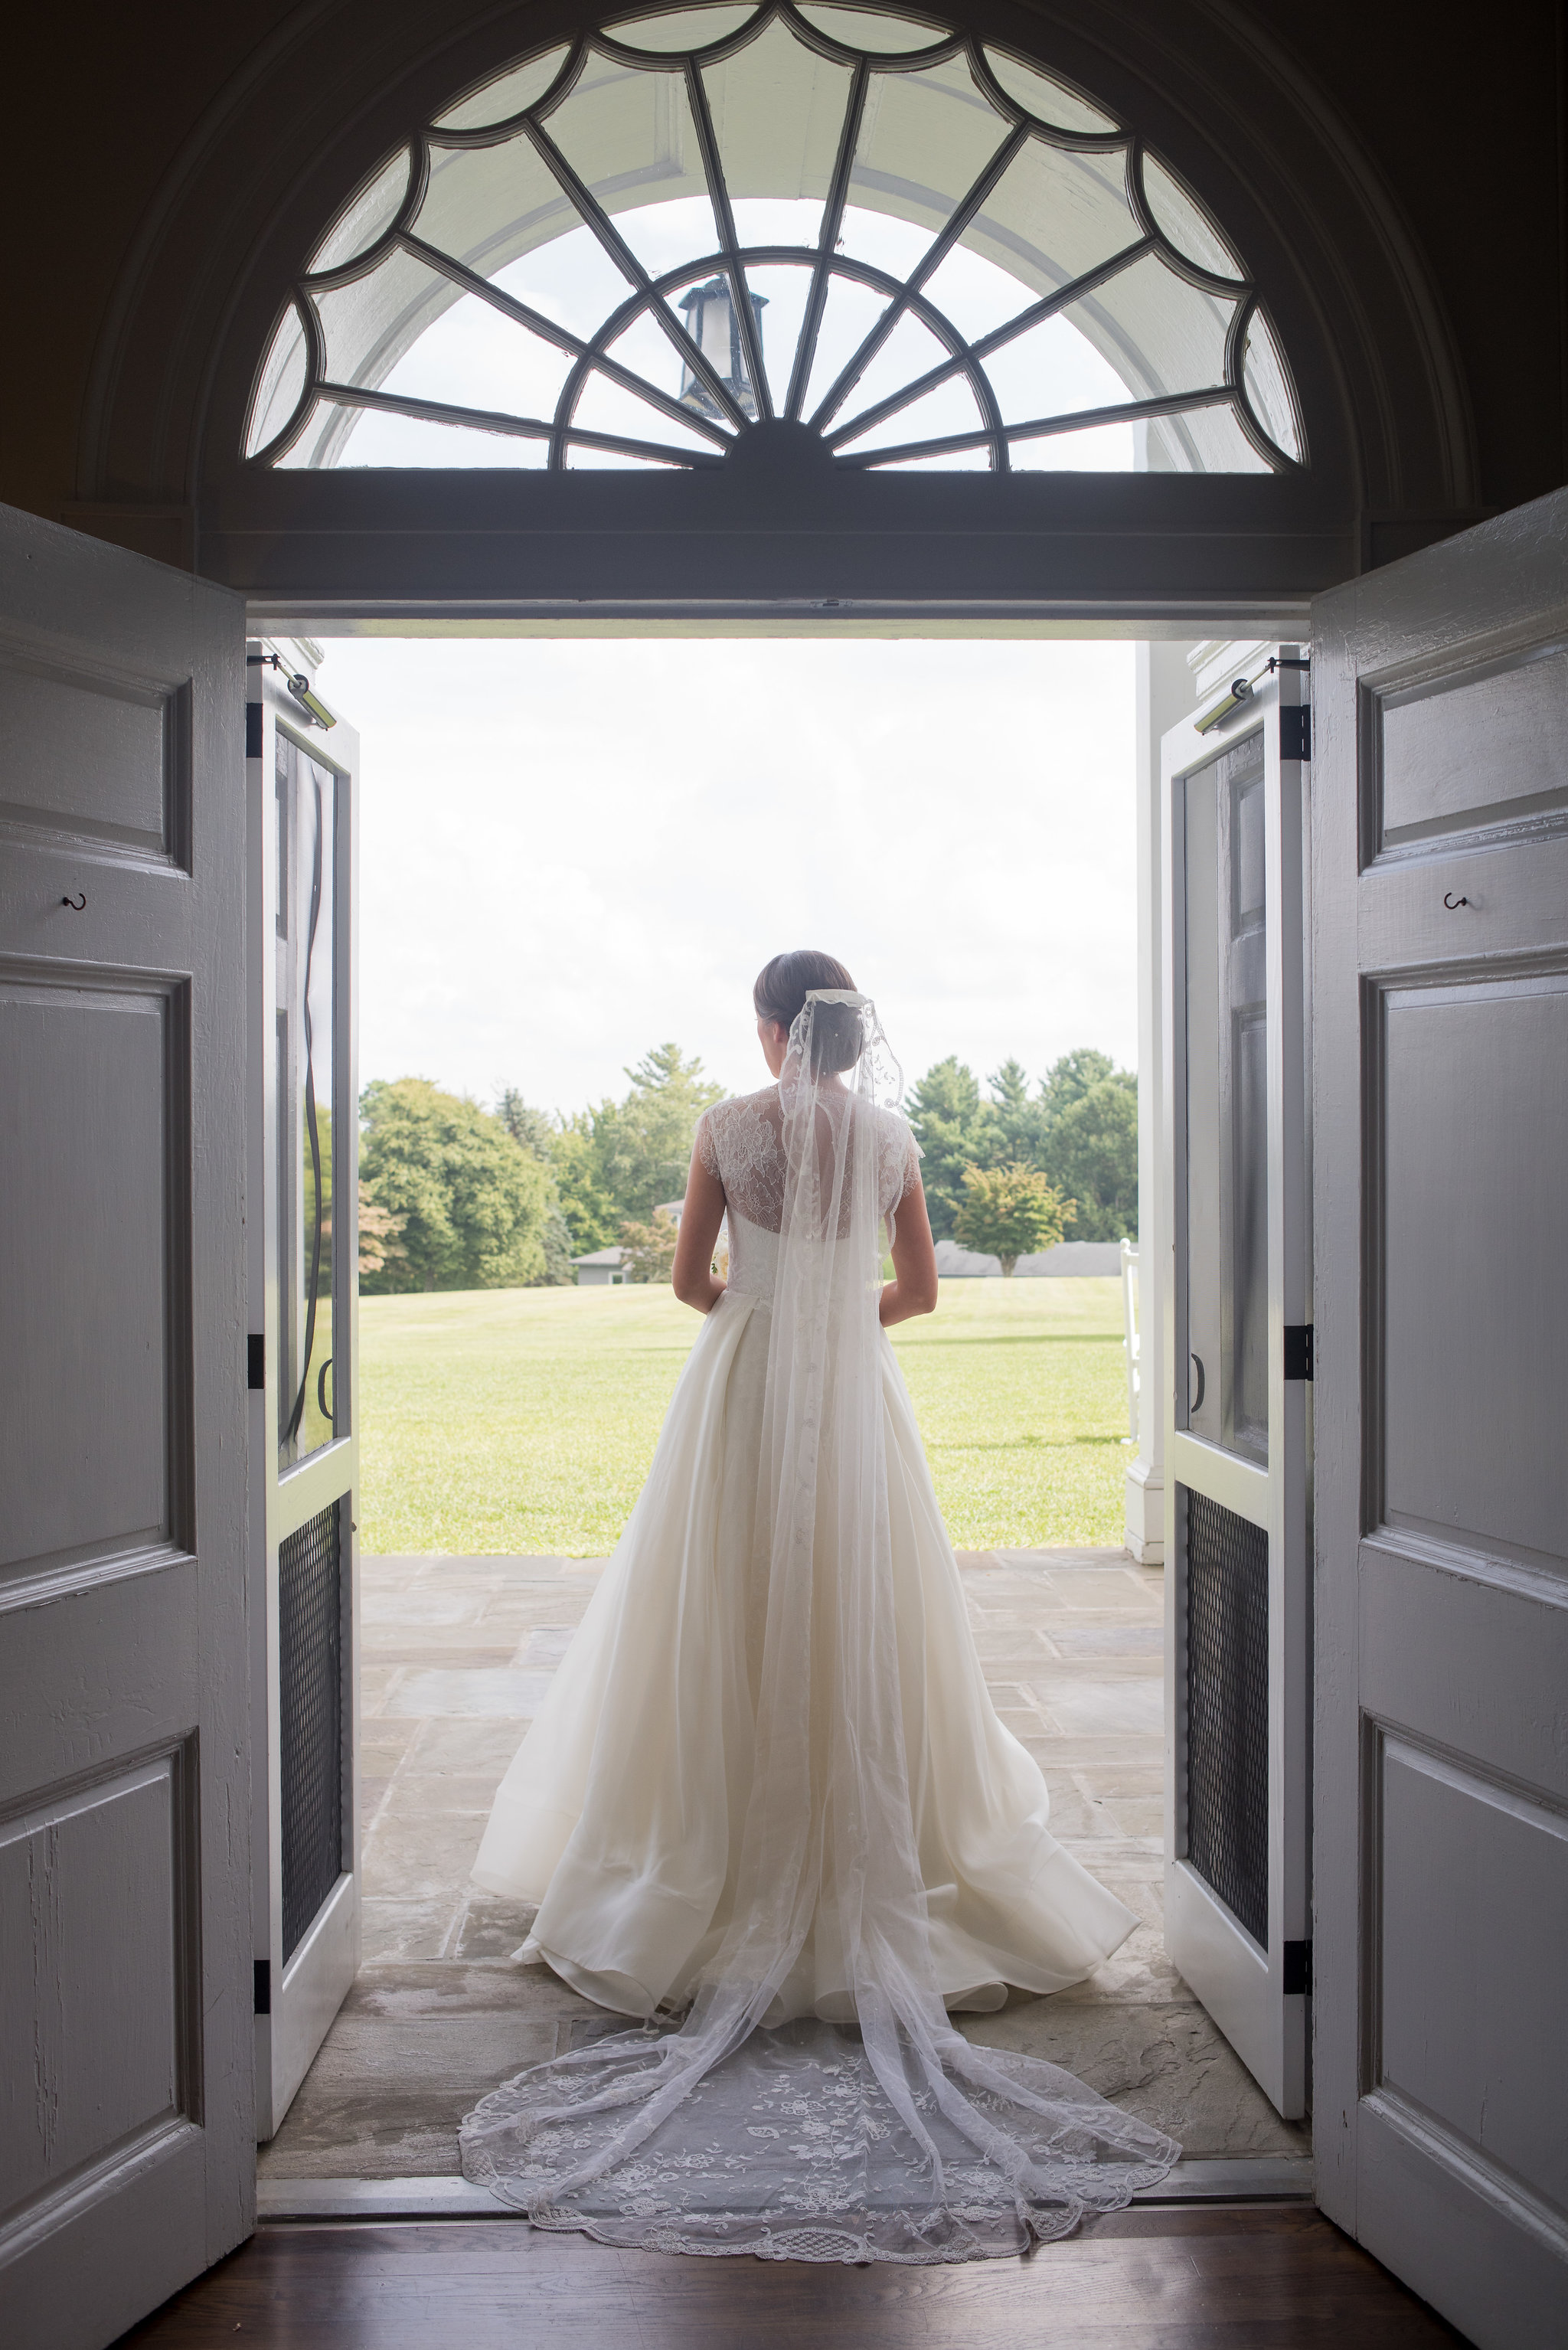 North Carolina Wedding, Events by Reagan, Destination Wedding Planner, Bride, Veil